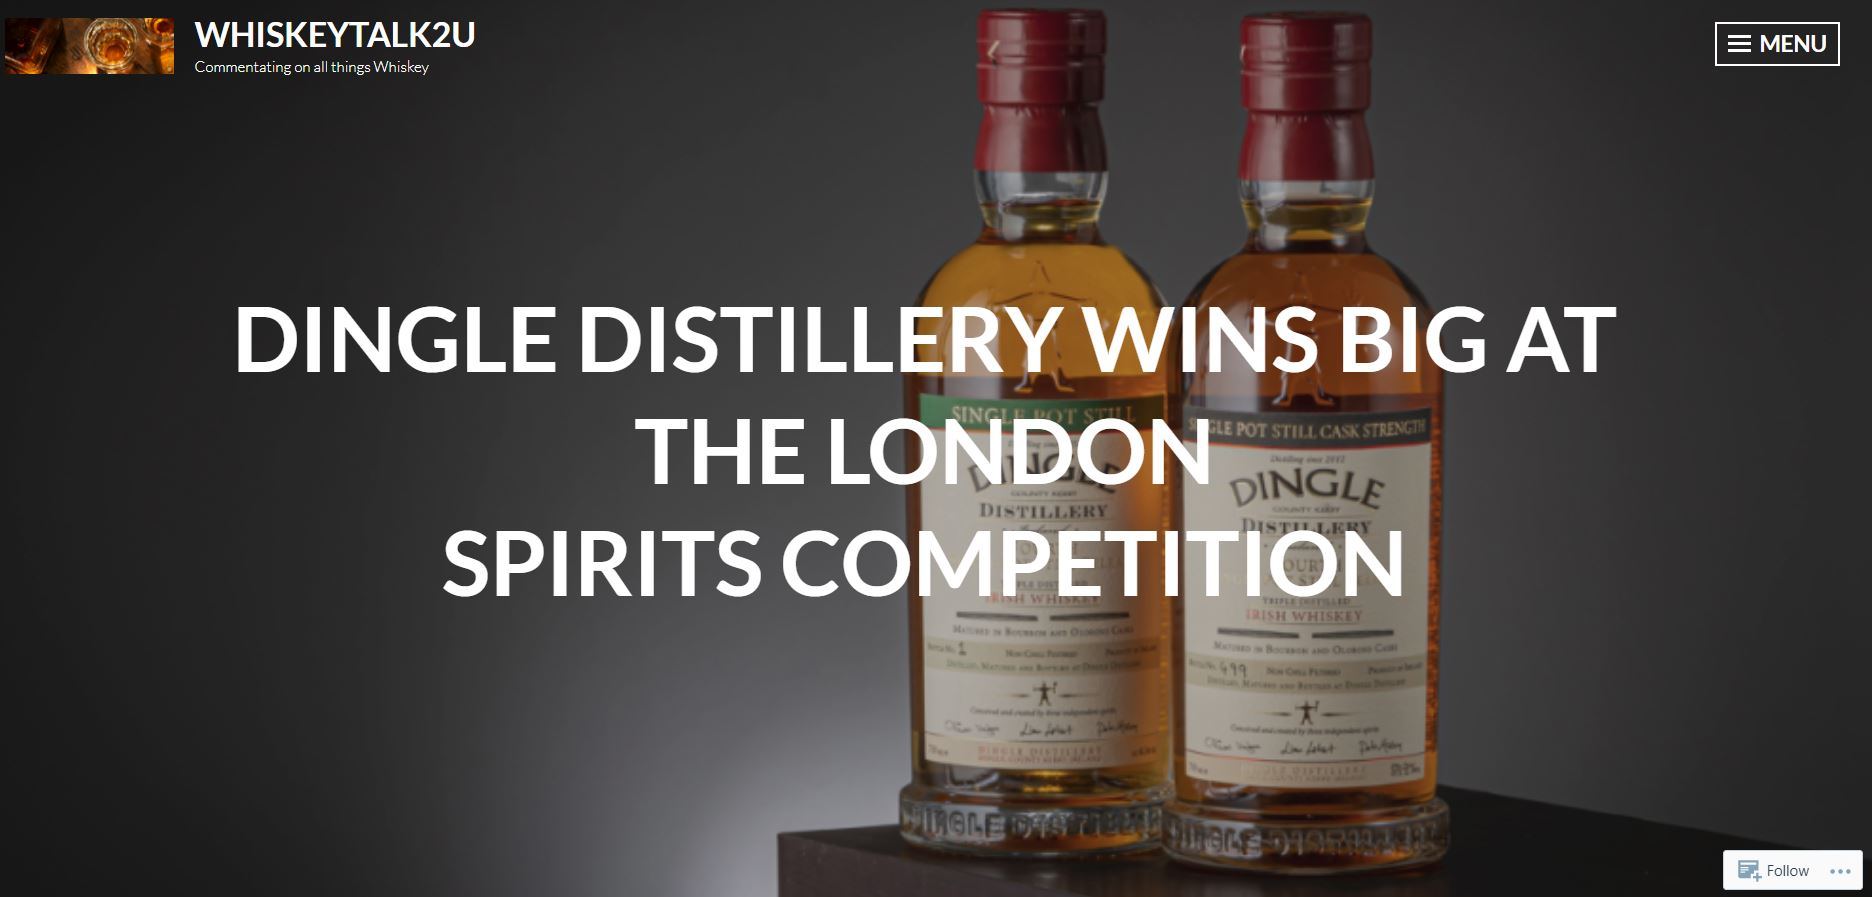 DINGLE DISTILLERY WINS BIG AT THE LONDON SPIRITS COMPETITION